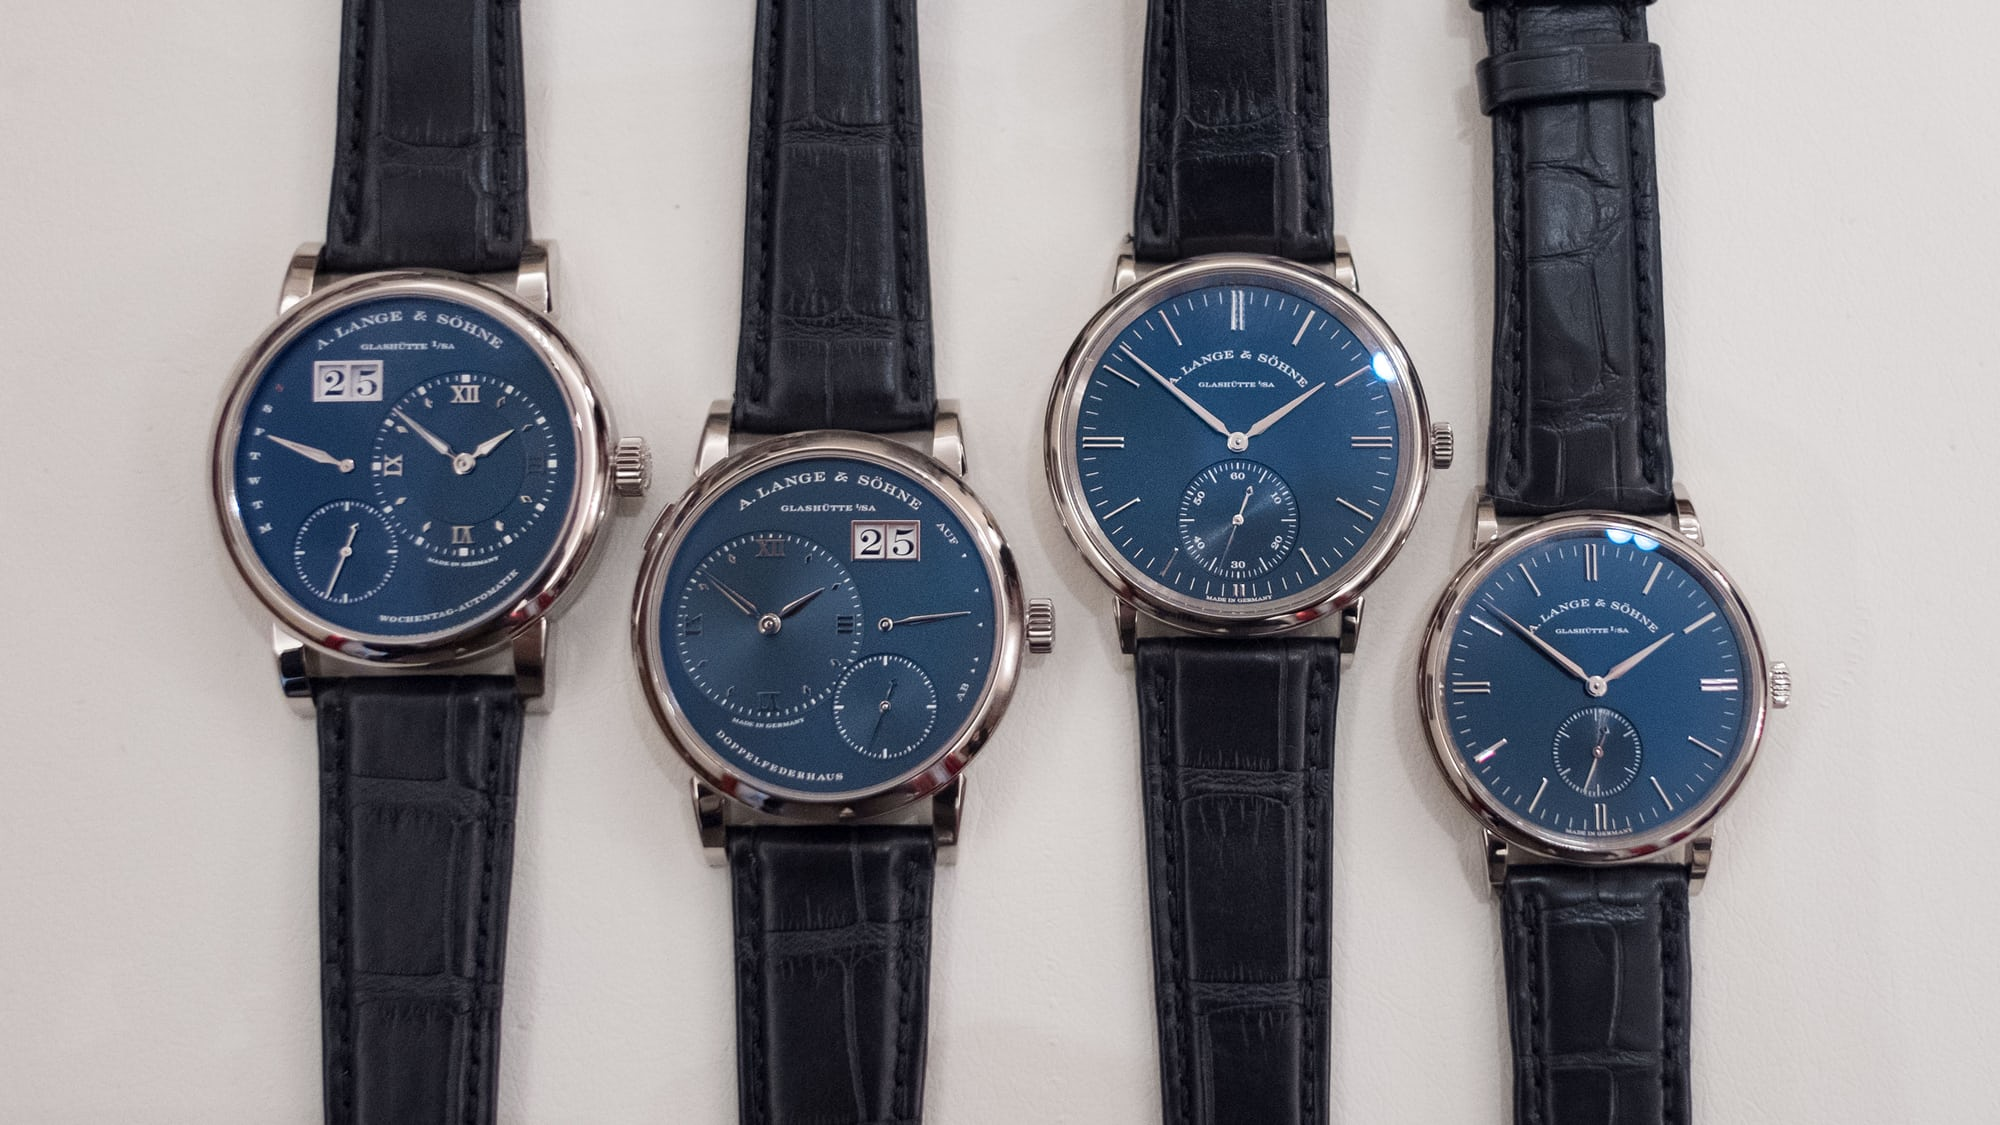 Blue hero.jpg?ixlib=rails 1.1 introducing: four new blue dials from a. lange & shne (live pics & pricing) Introducing: Four New Blue Dials From A. Lange & Shne (Live Pics & Pricing) blue hero